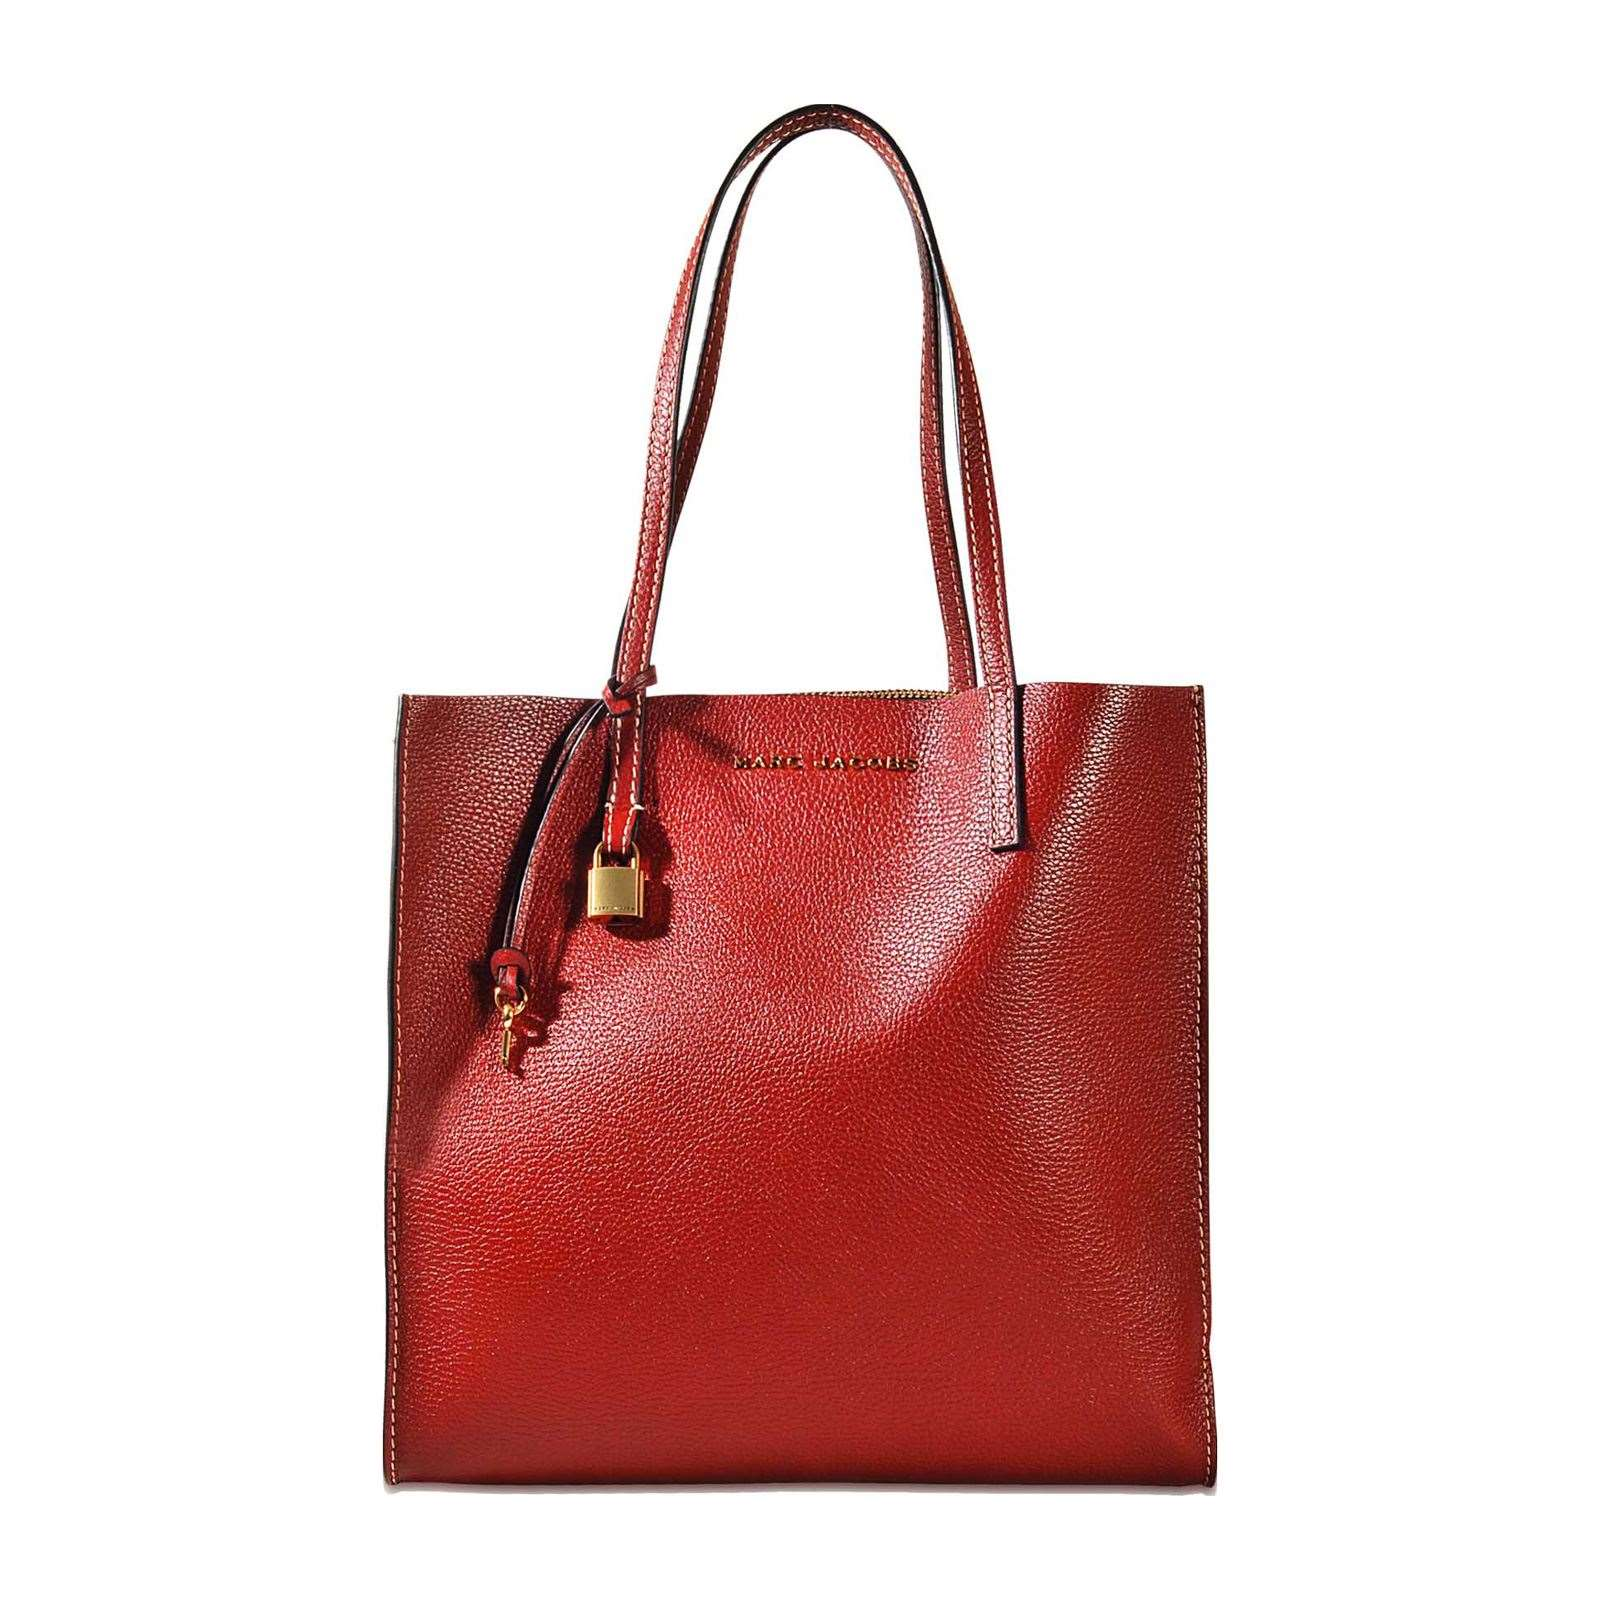 Marc Jacobs Sac shopping en cuir - rouge   BrandAlley b96a755e81ac